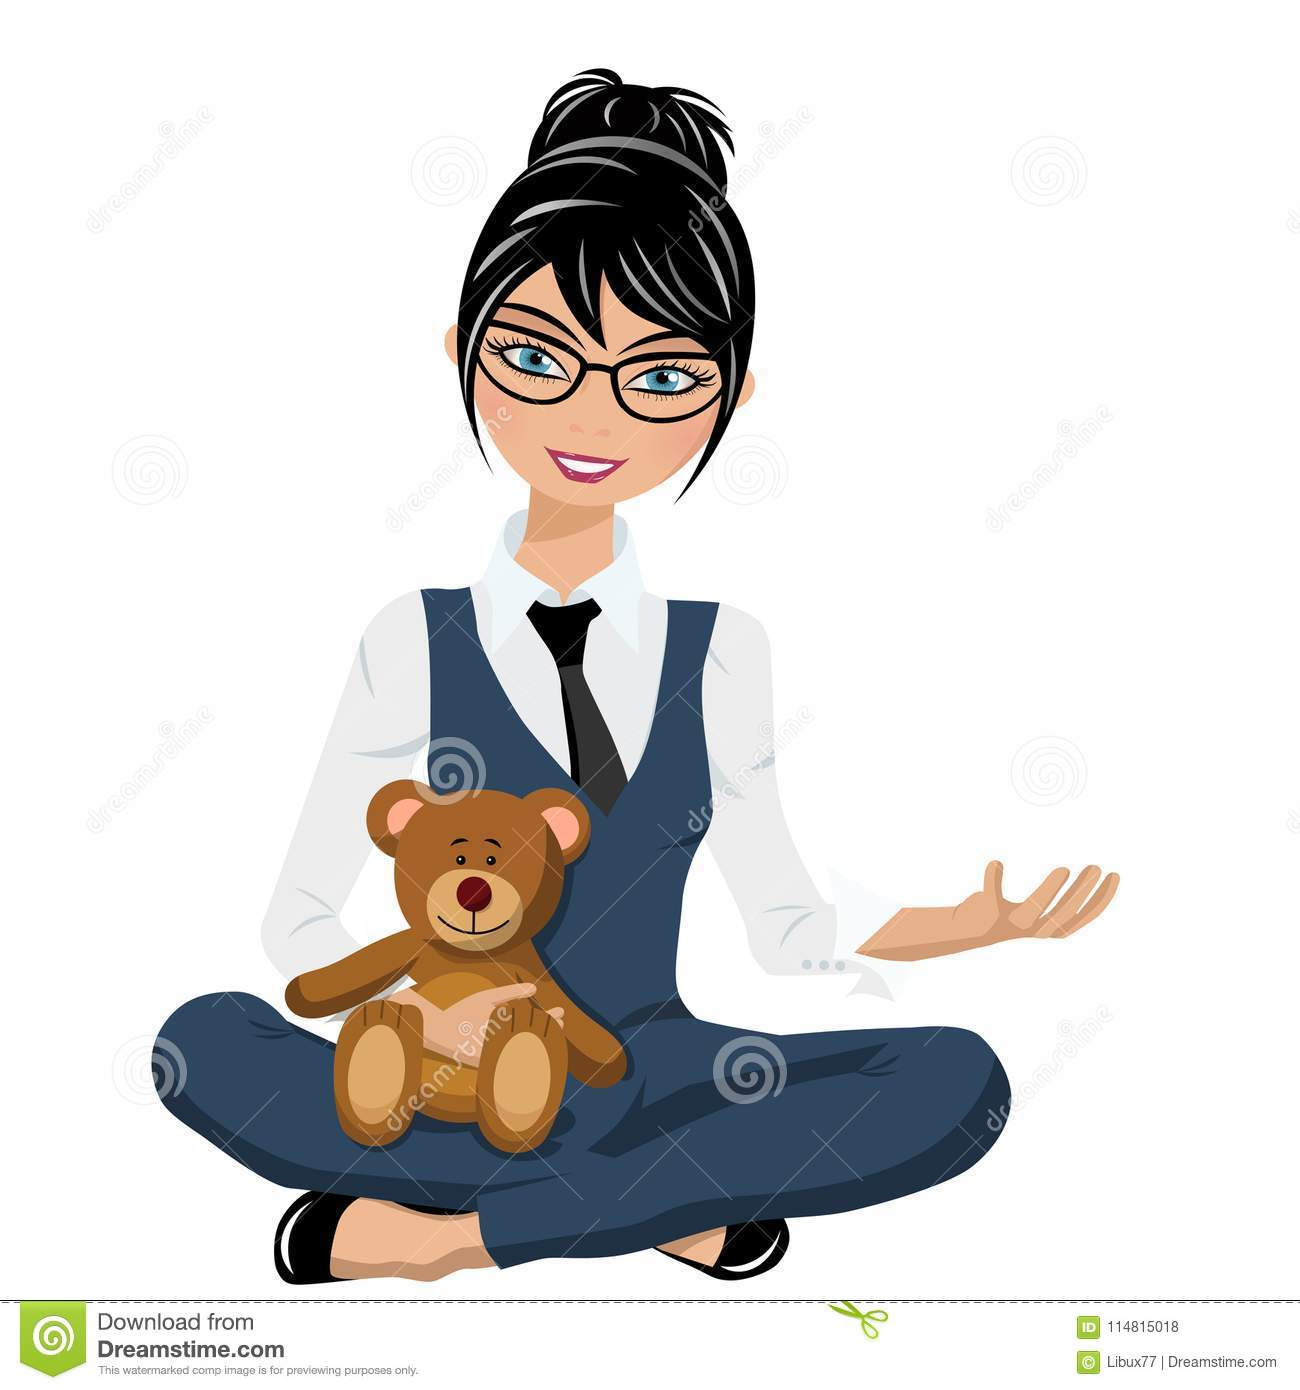 Businesswoman sit crossed arms and legs holding teddy bear isolated